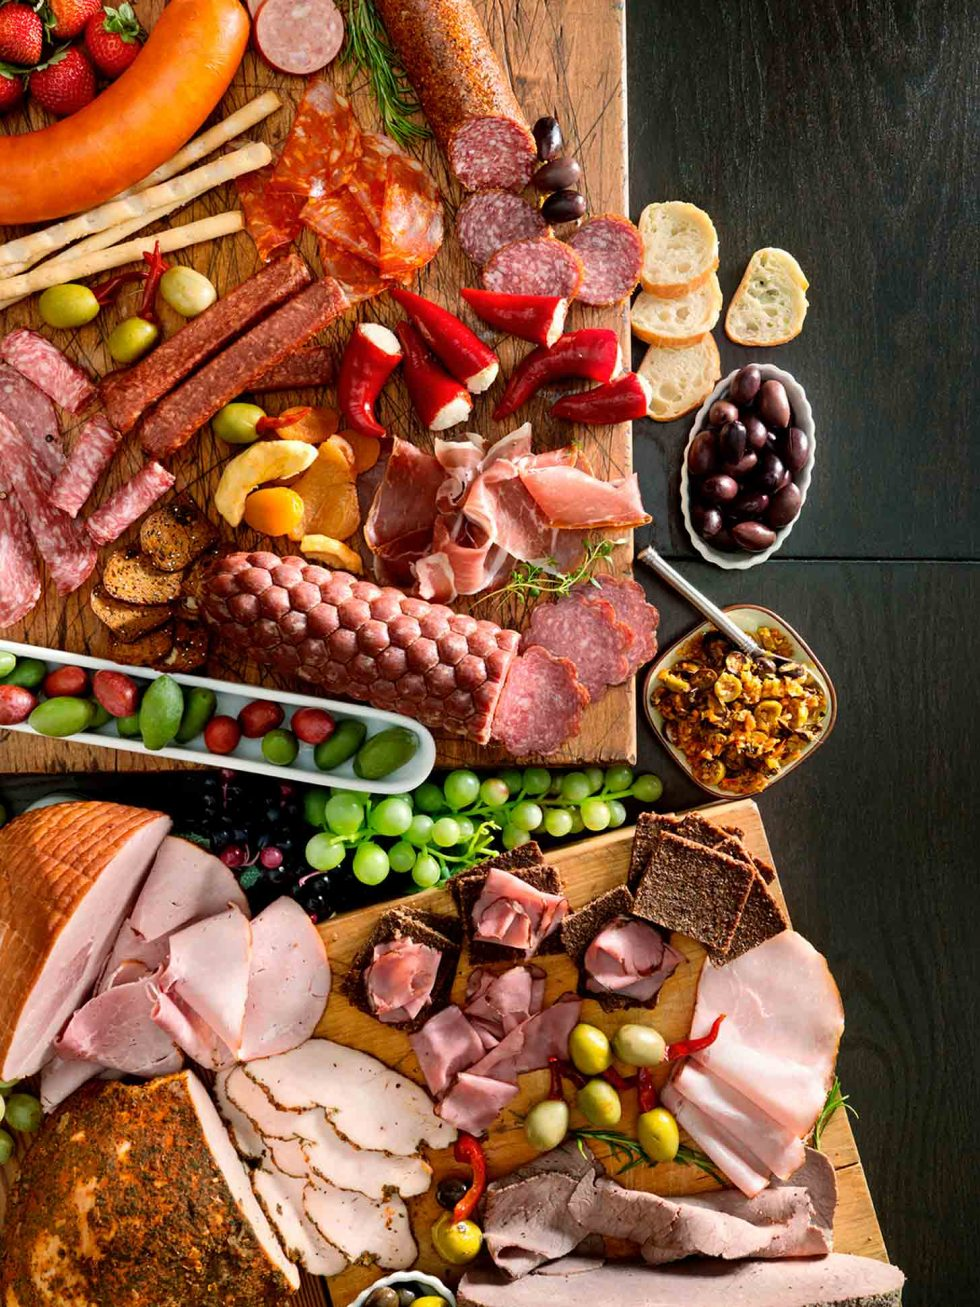 Calgary Food Photography. Rustic charcuterie display, assortment of cured meets with olives, breads and more.